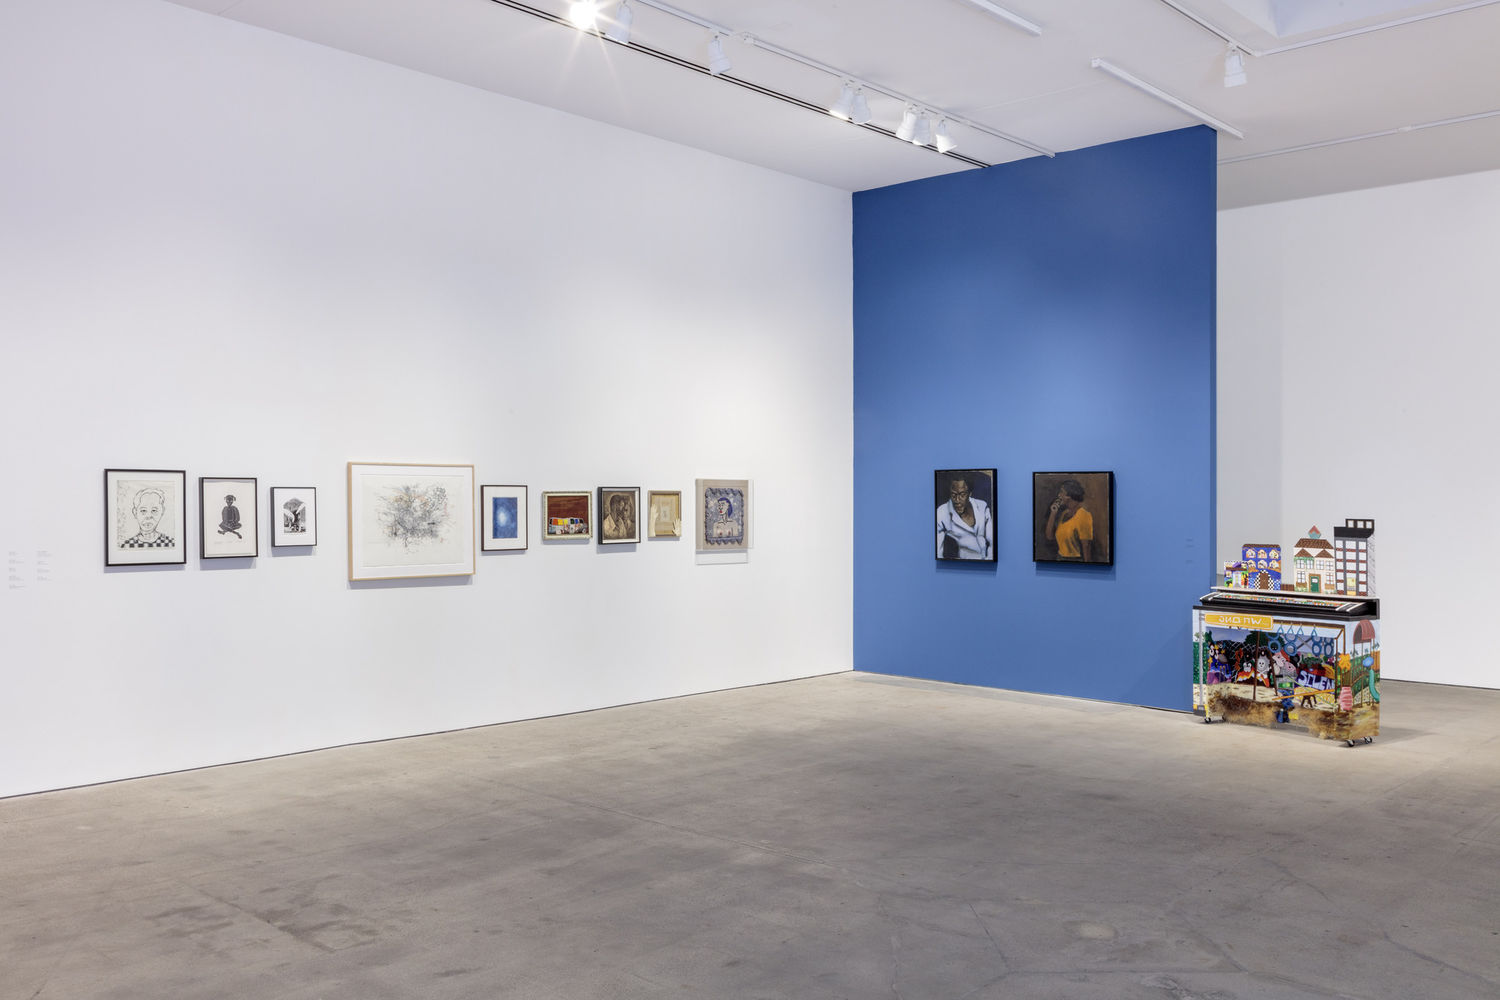 A gallery with a white and a blue wall with several artworks hanging